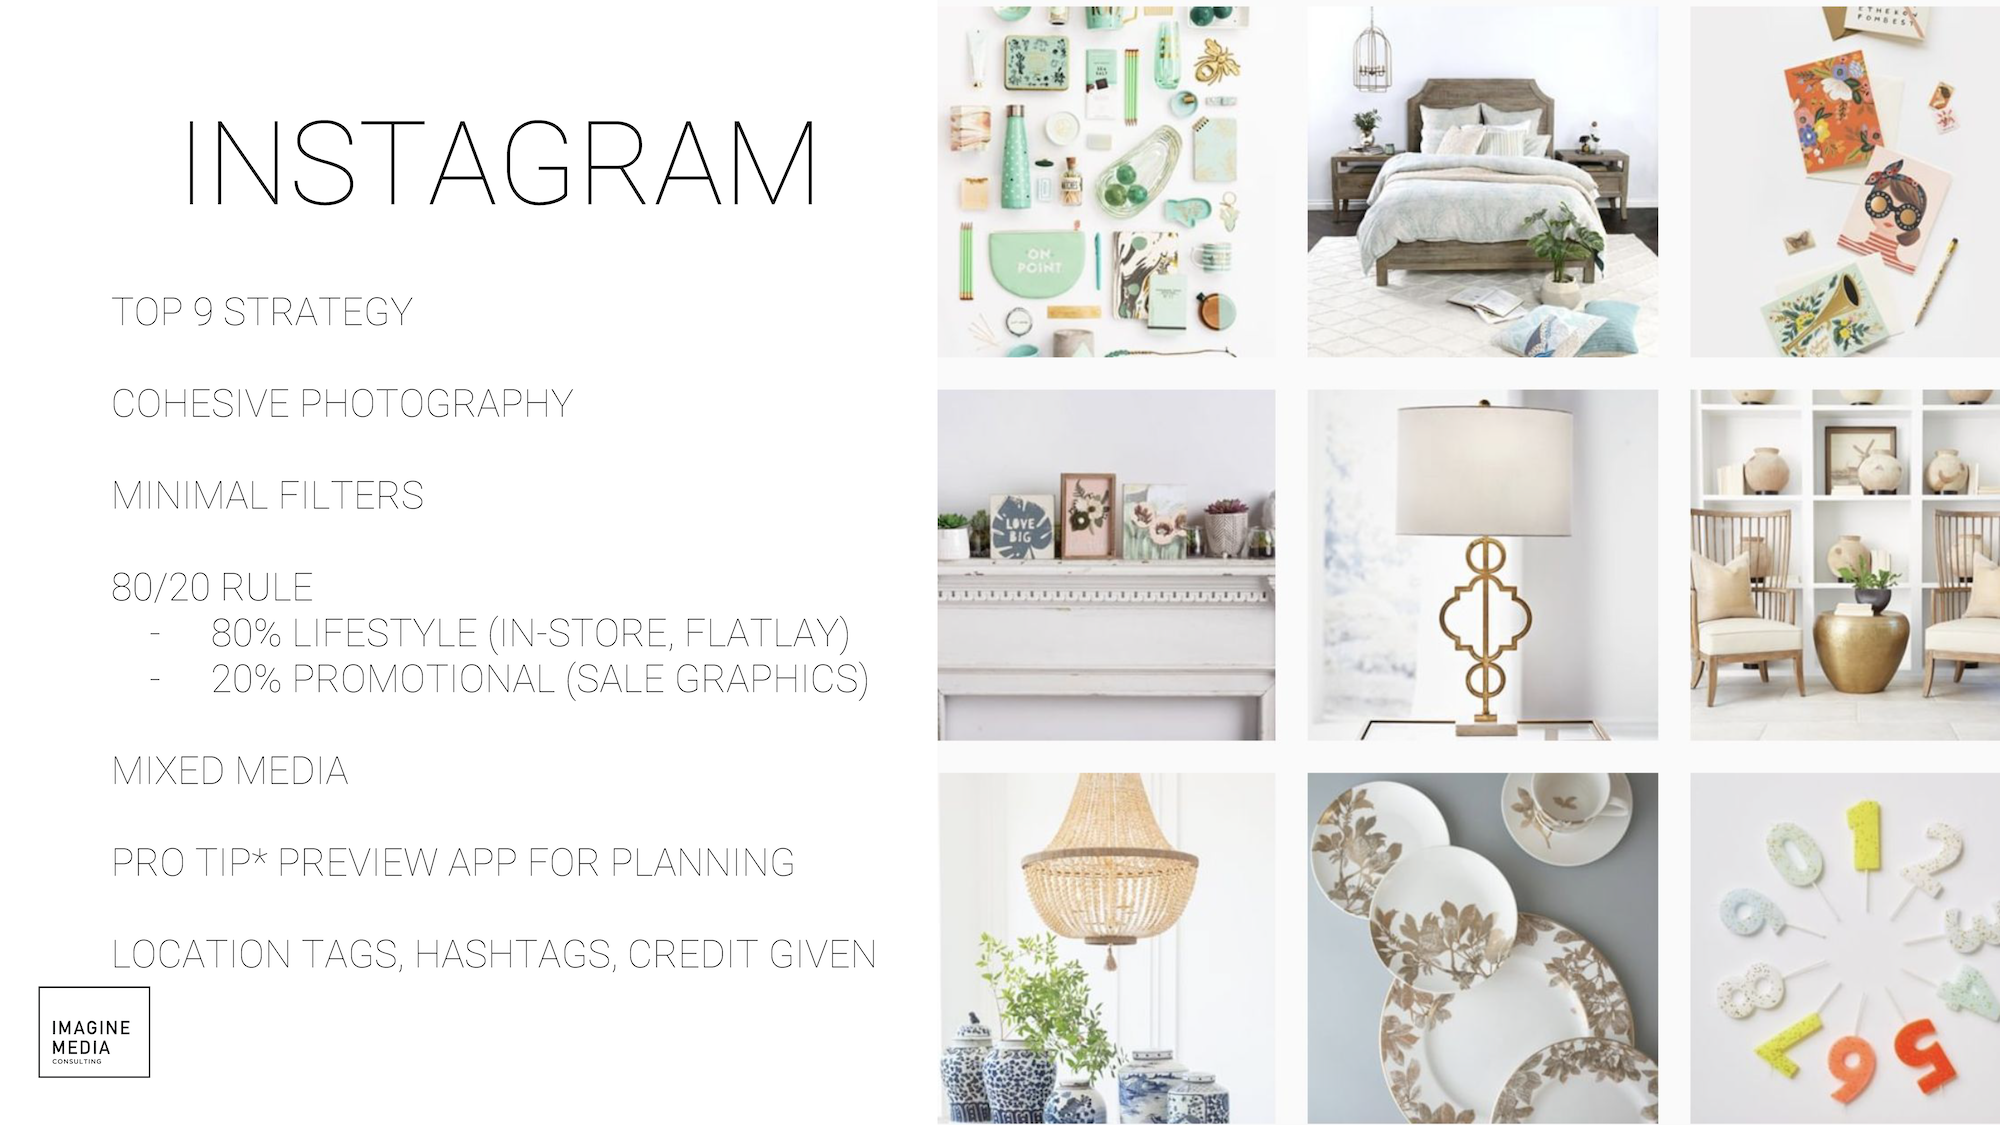 AMERICASMART PRESENTATION MARCH 2019_Page_12.png